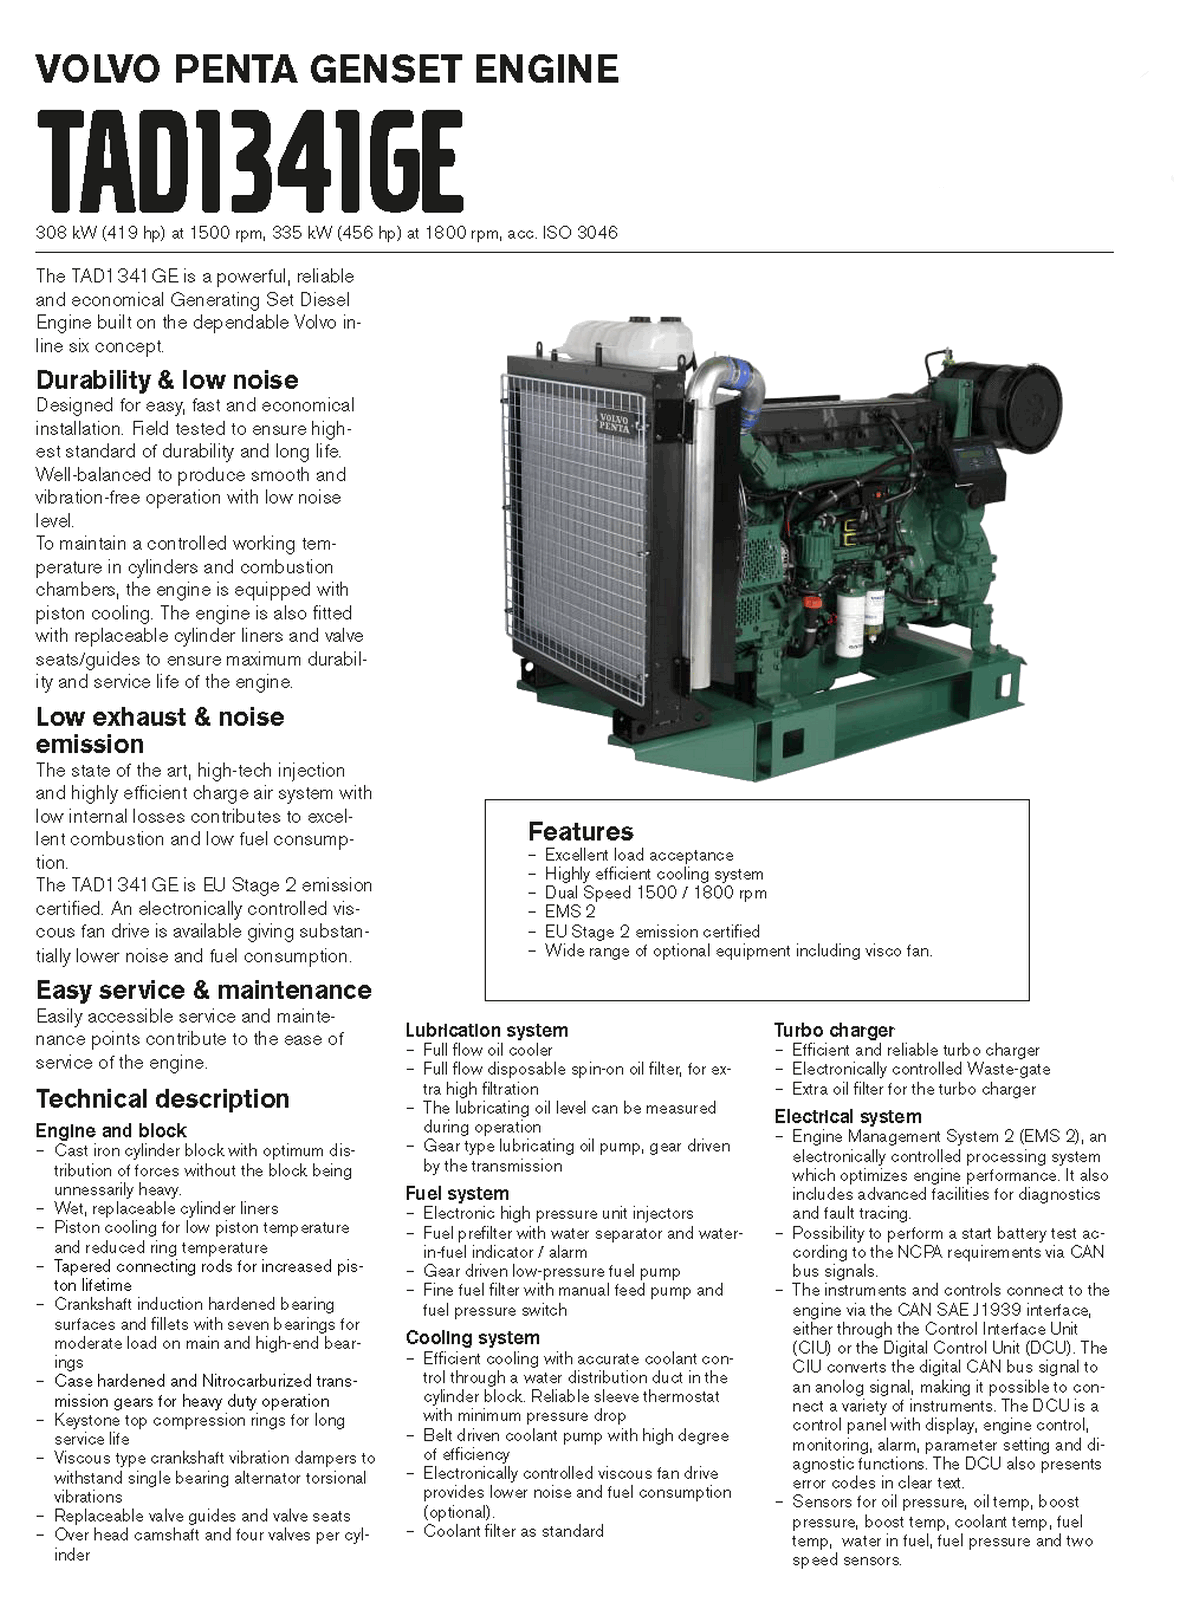 spec_engine_volvo_tad1341ge_1.png